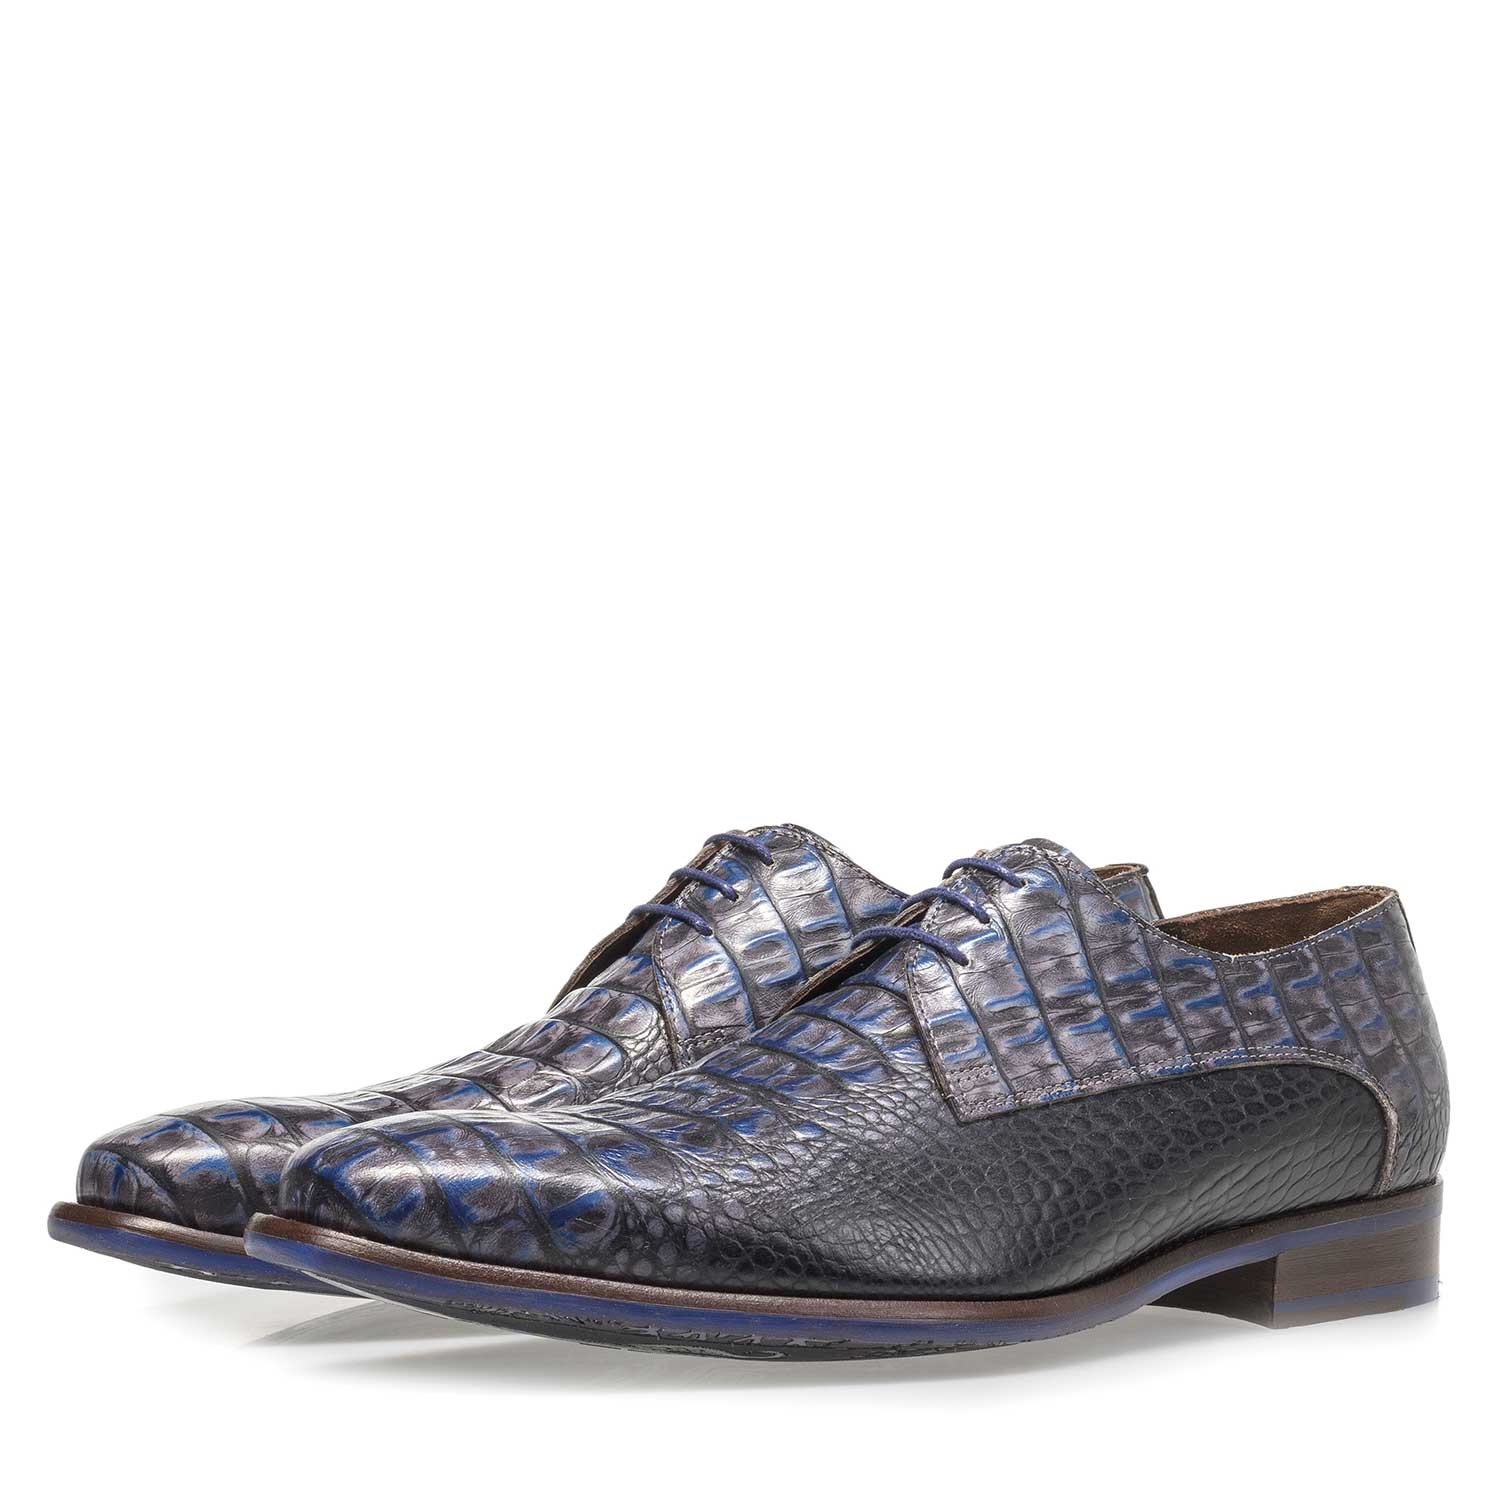 18159/03 - Blue leather lace shoe with croco print